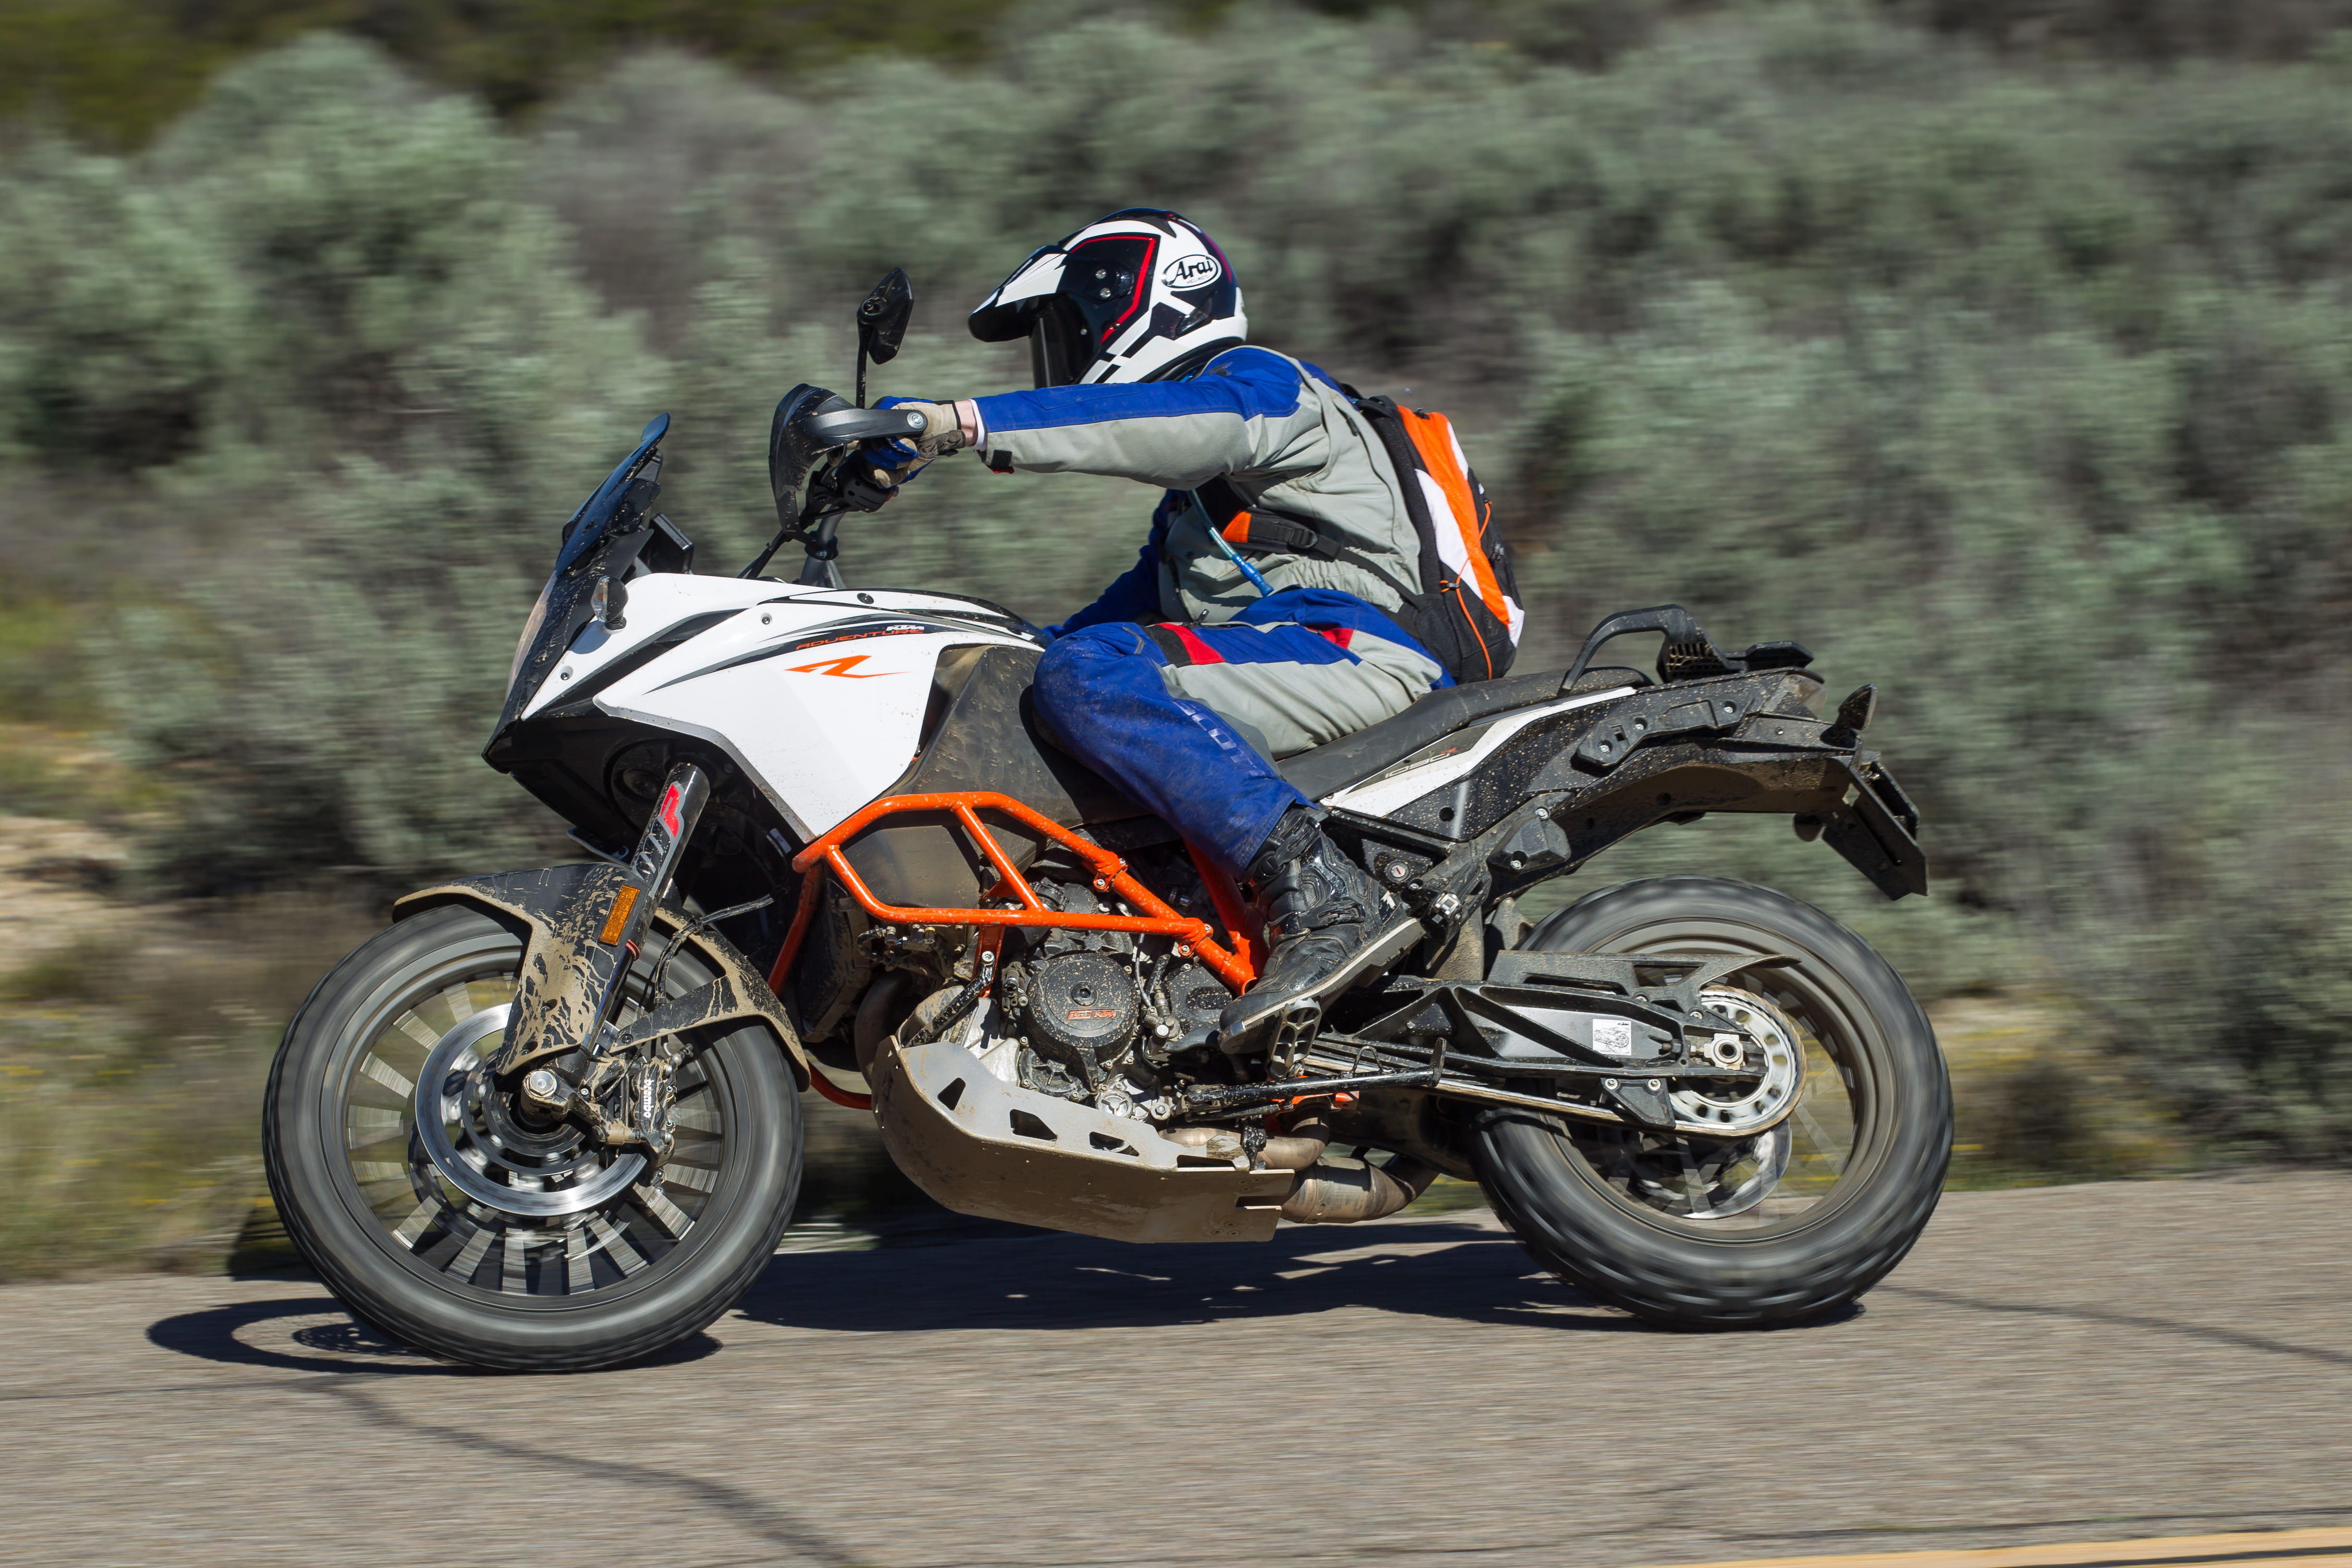 ktm 1090 adventure r (2017) - first ride and review